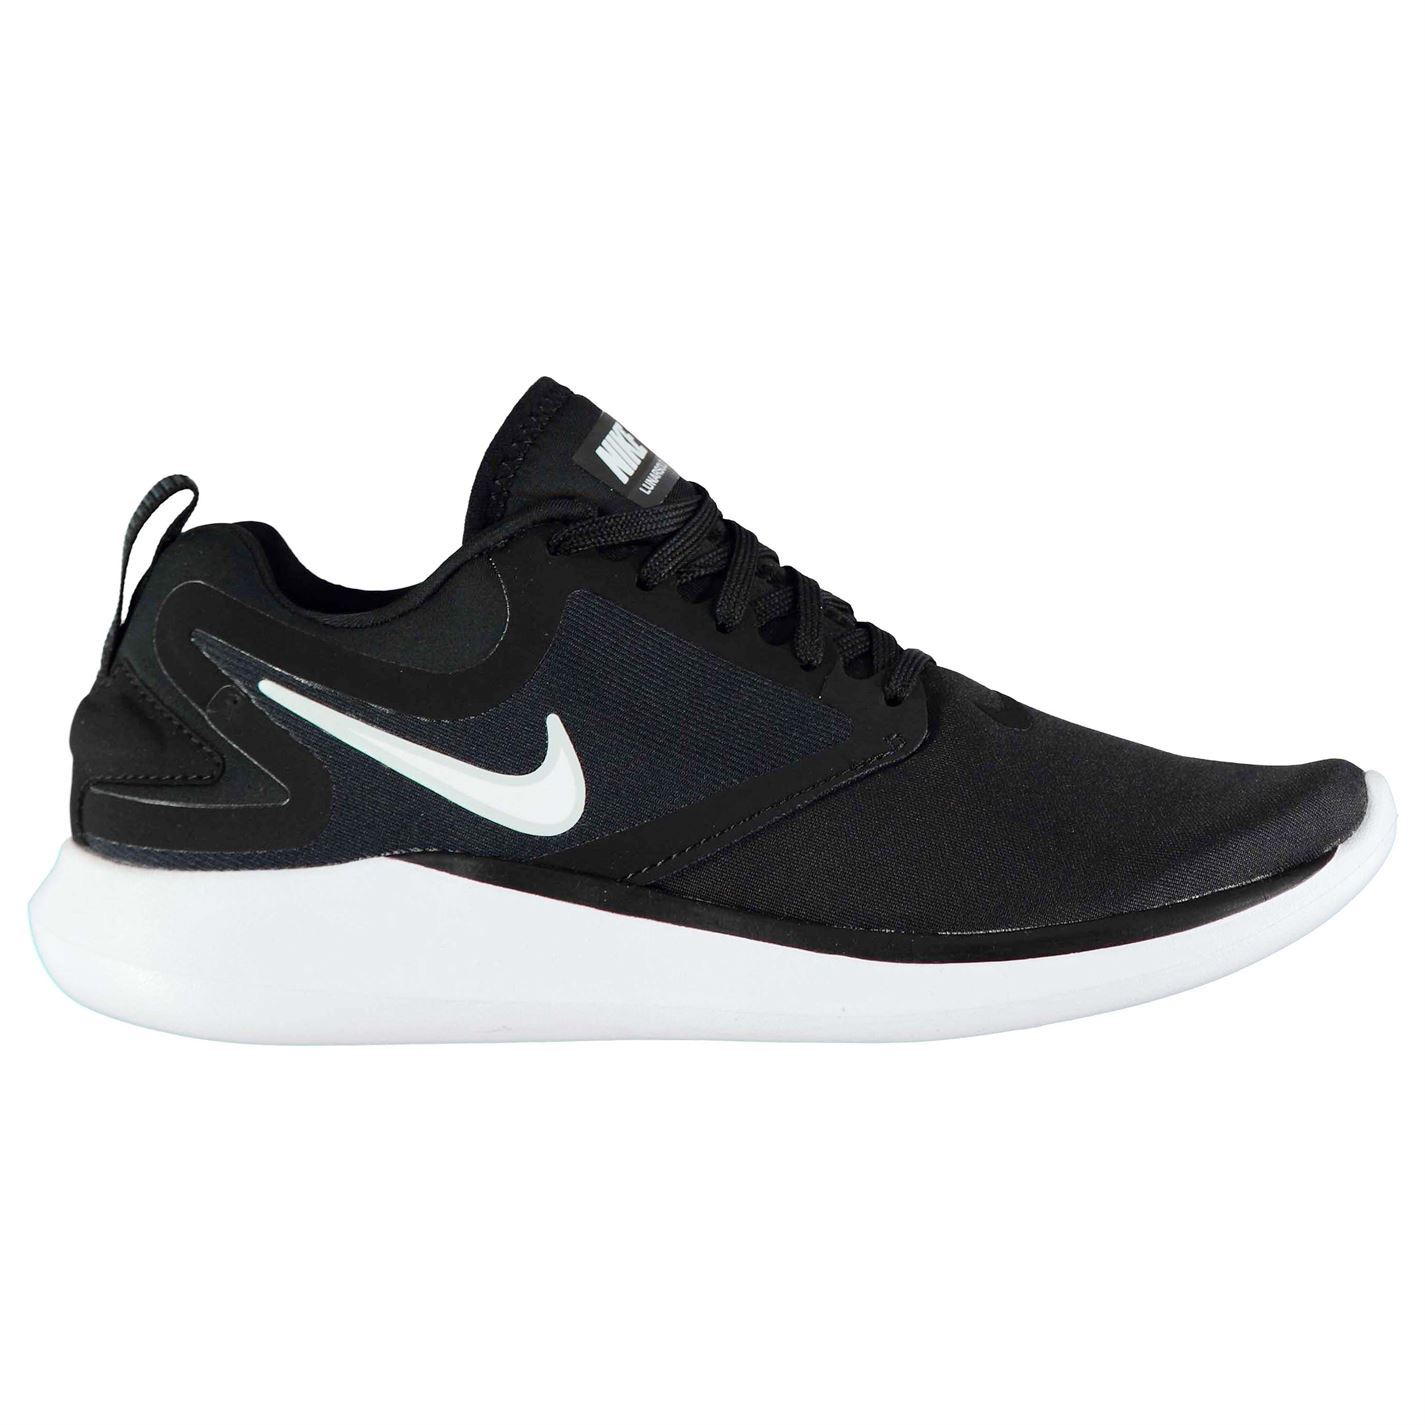 Details about Nike Lunar Solo Running Shoes Womens Black White Run Jogging  Trainers Sneakers 20b8c4276